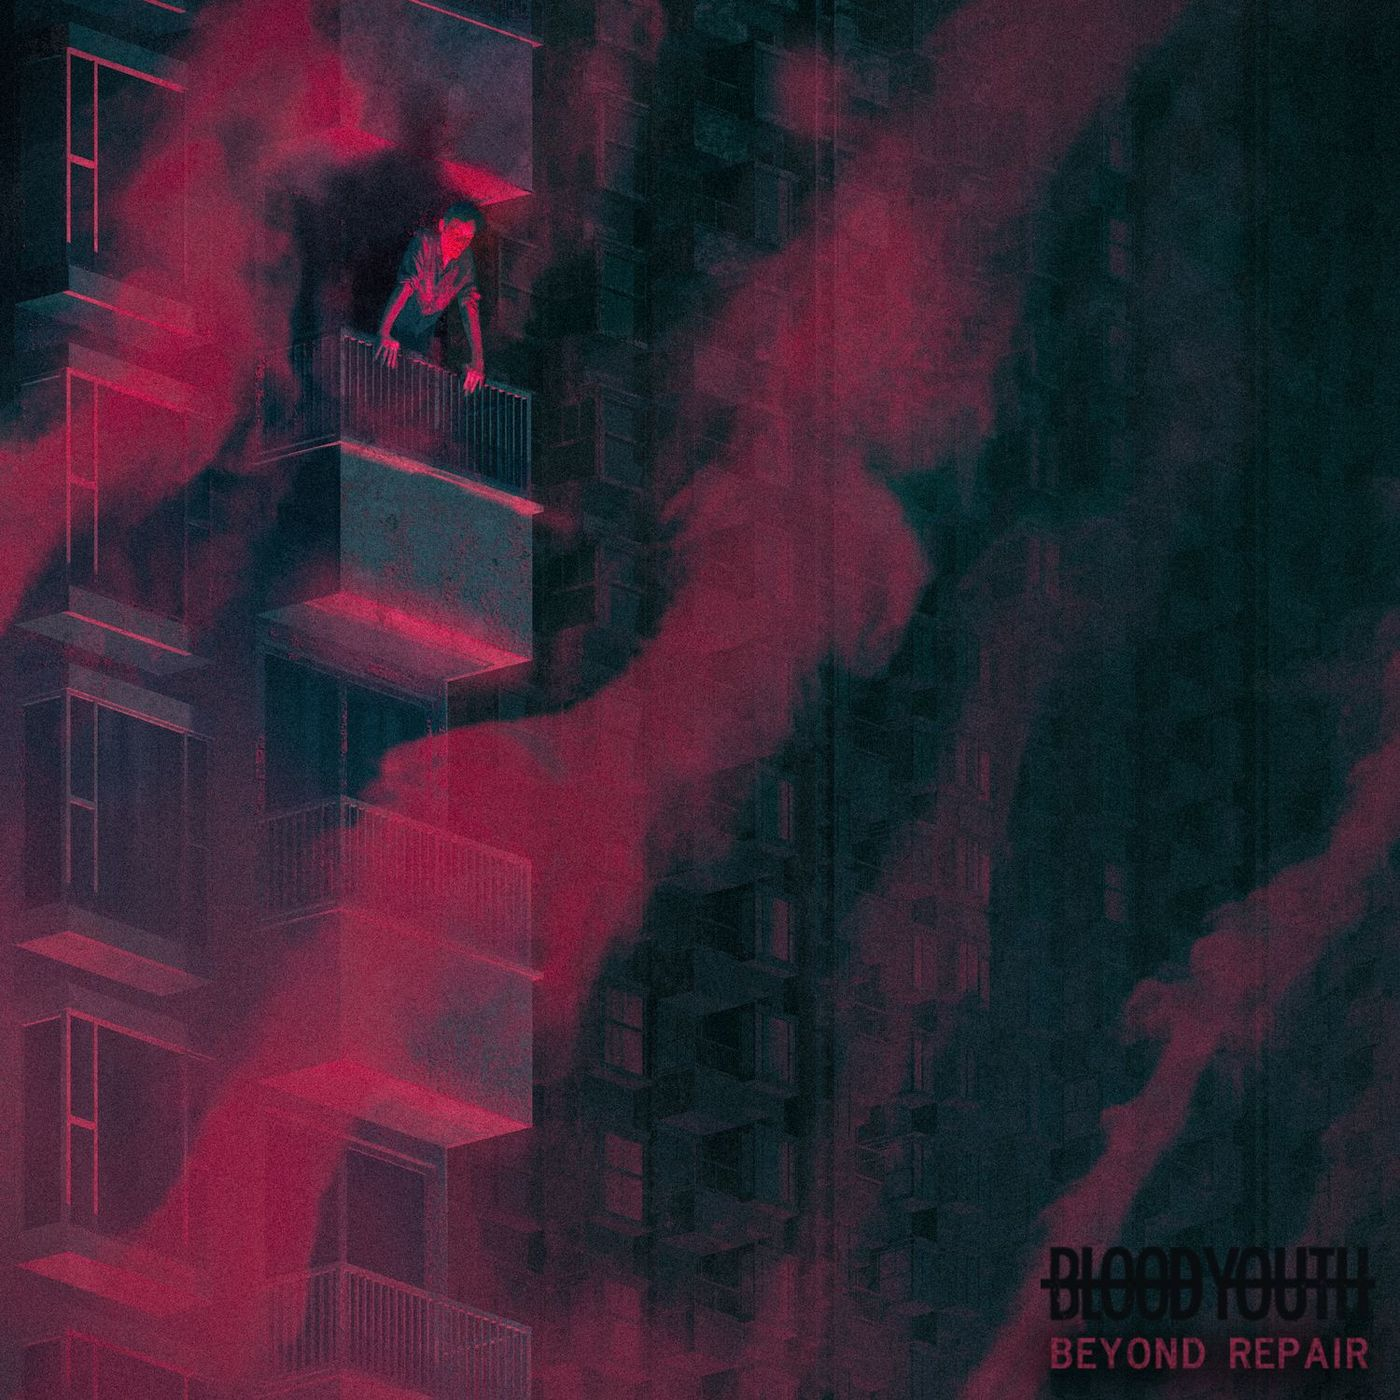 Blood Youth - Making Waves [single] (2017)